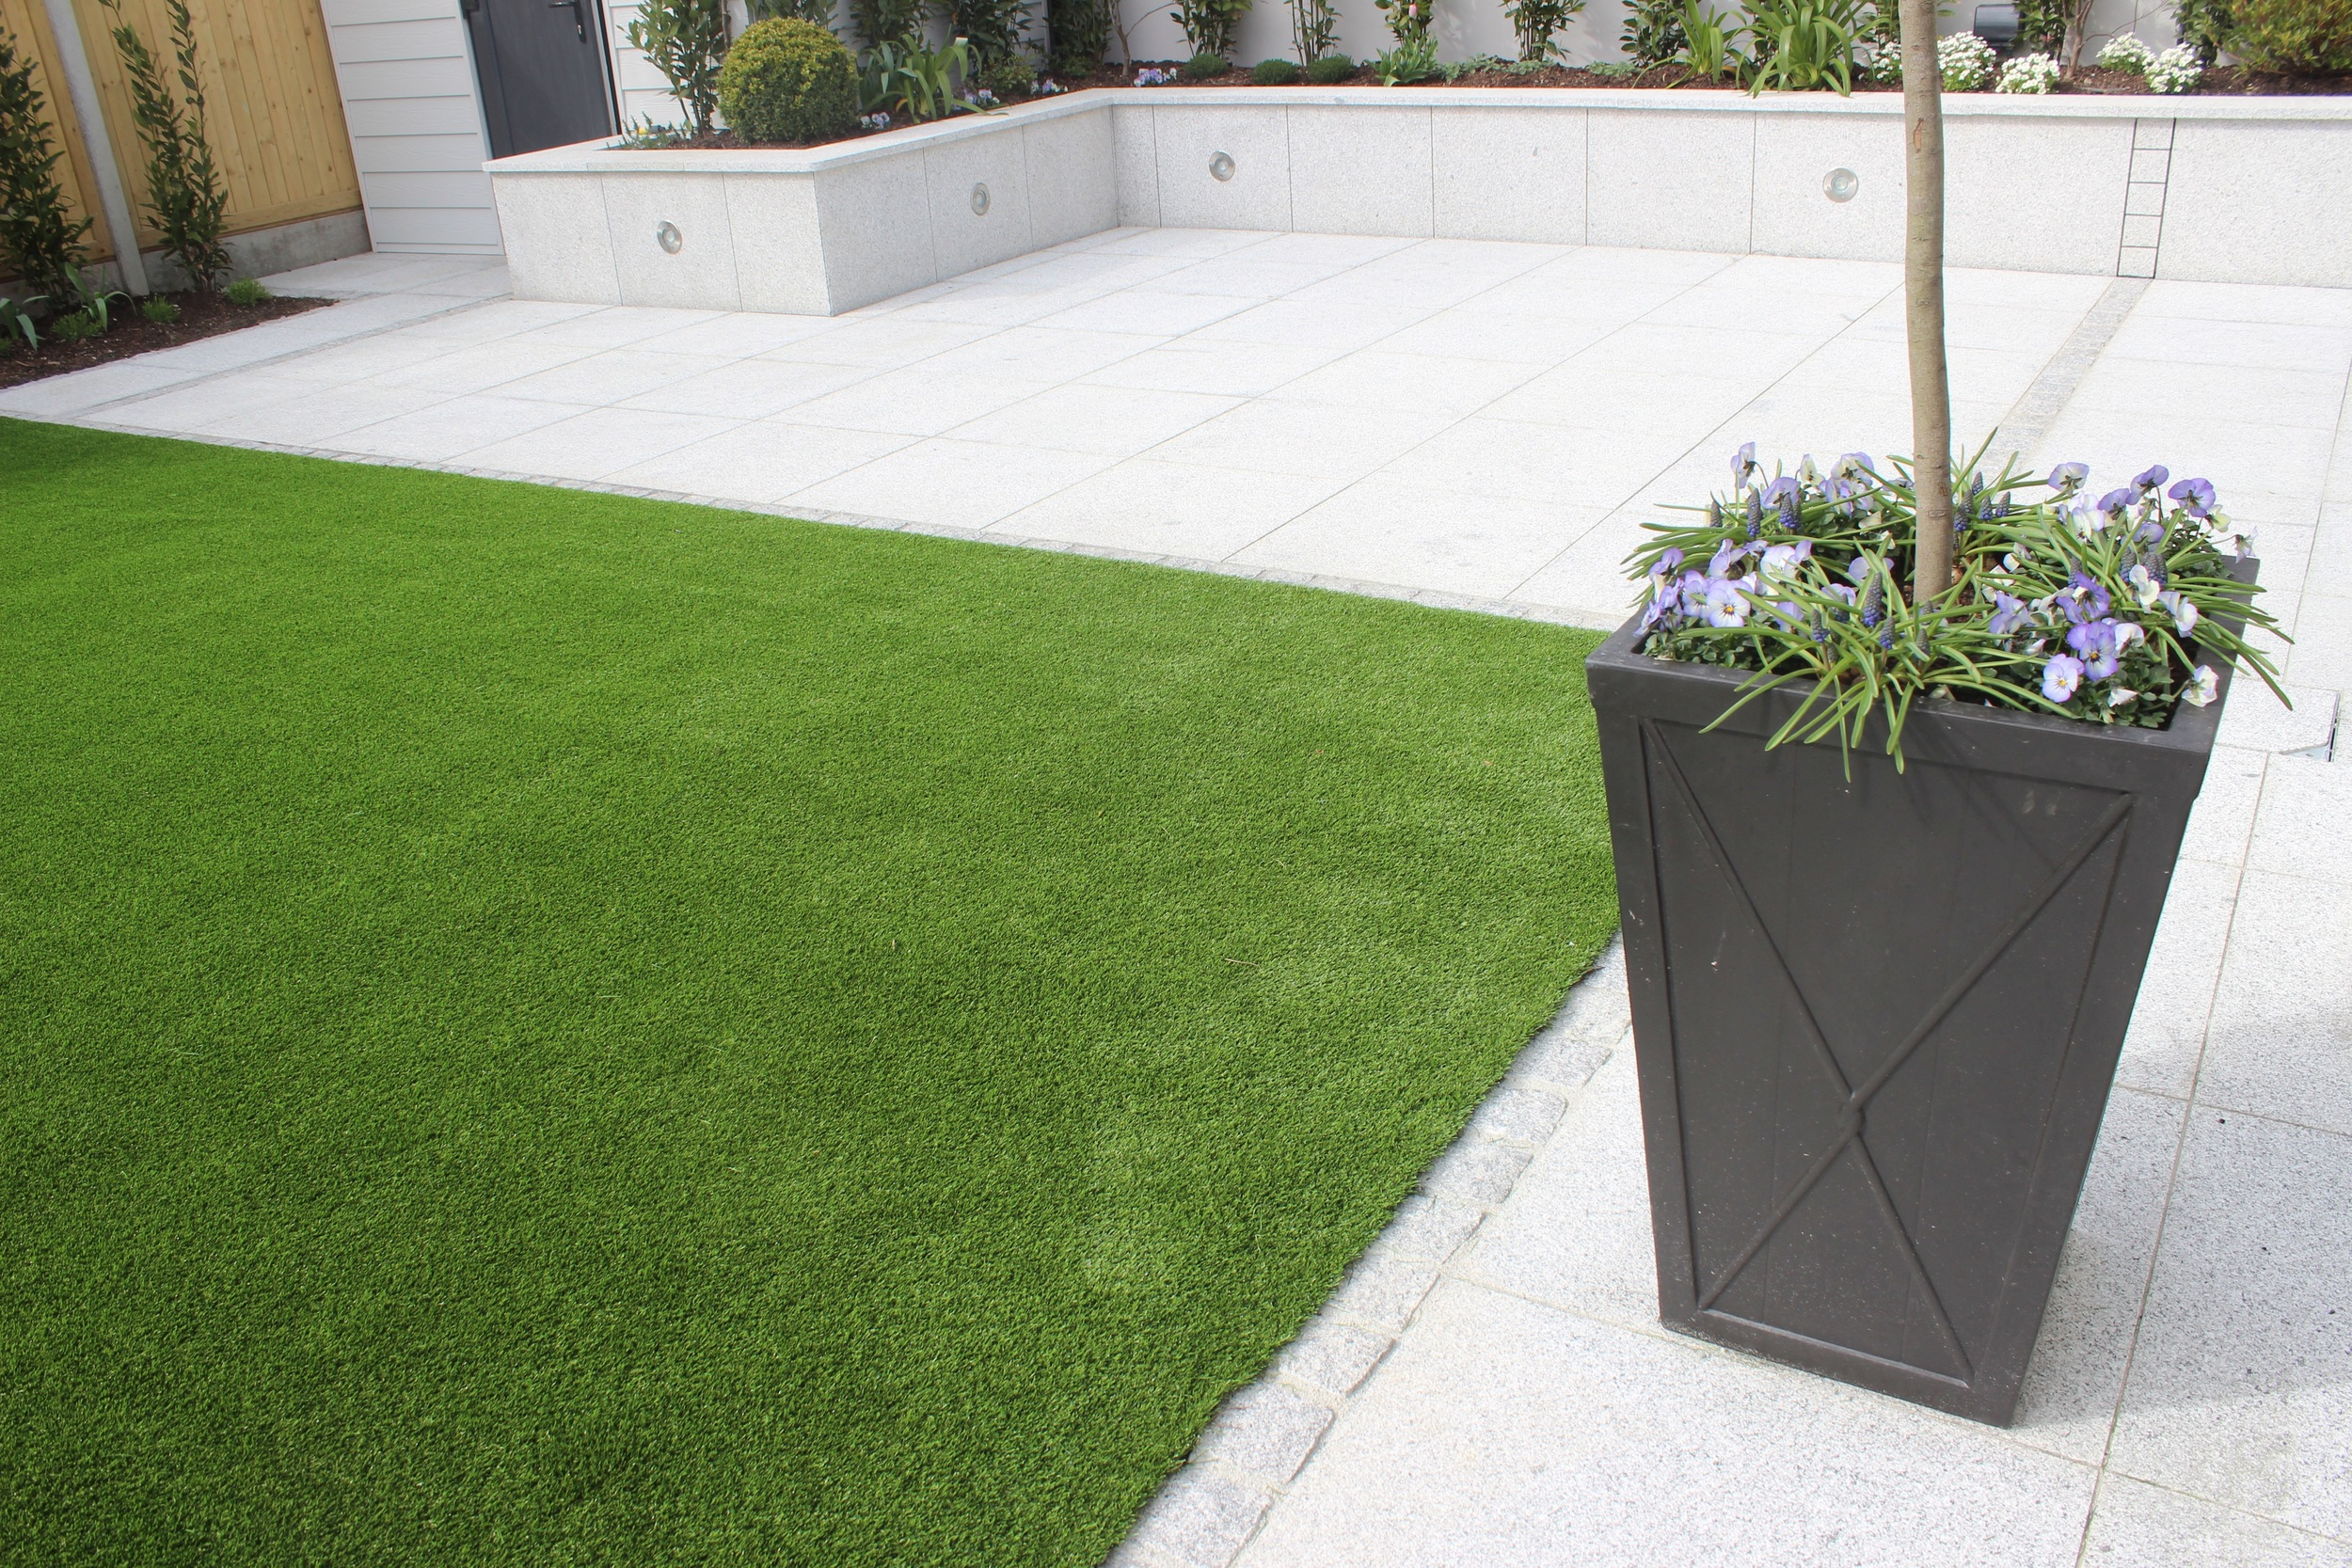 New Garden Design Featuring Artificial Grass